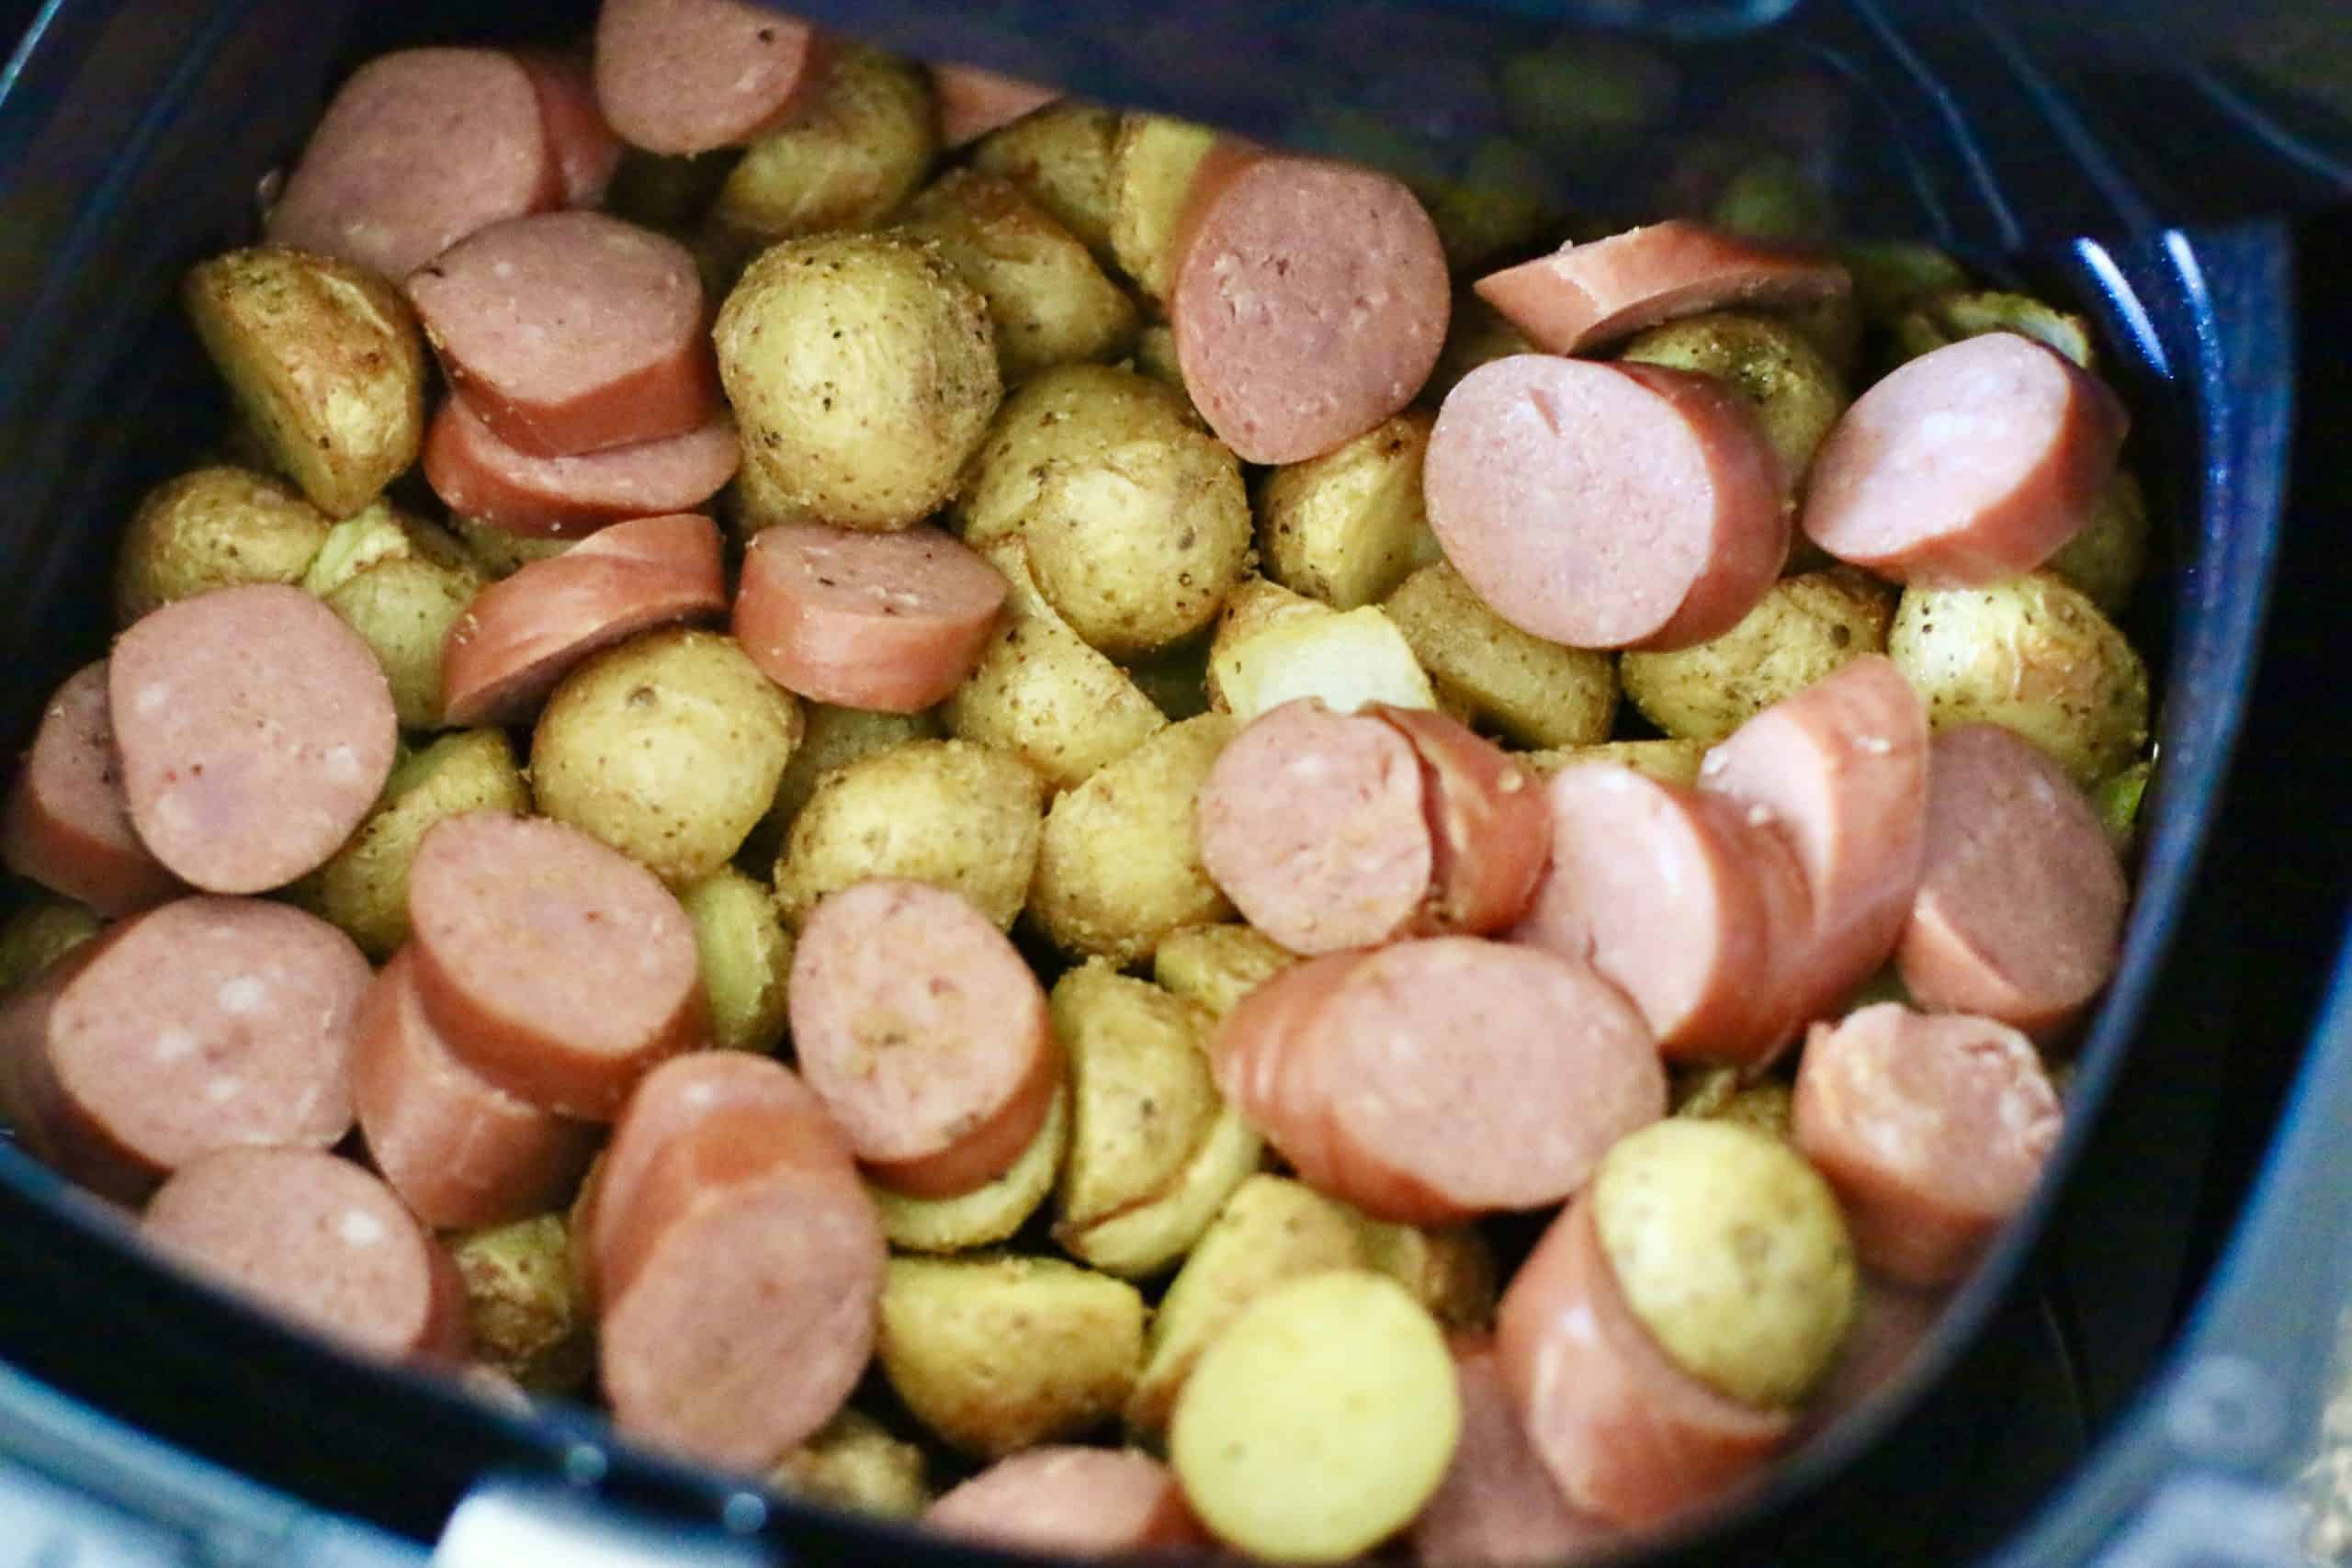 sliced smoked sausage added to cooked potatoes and onions.